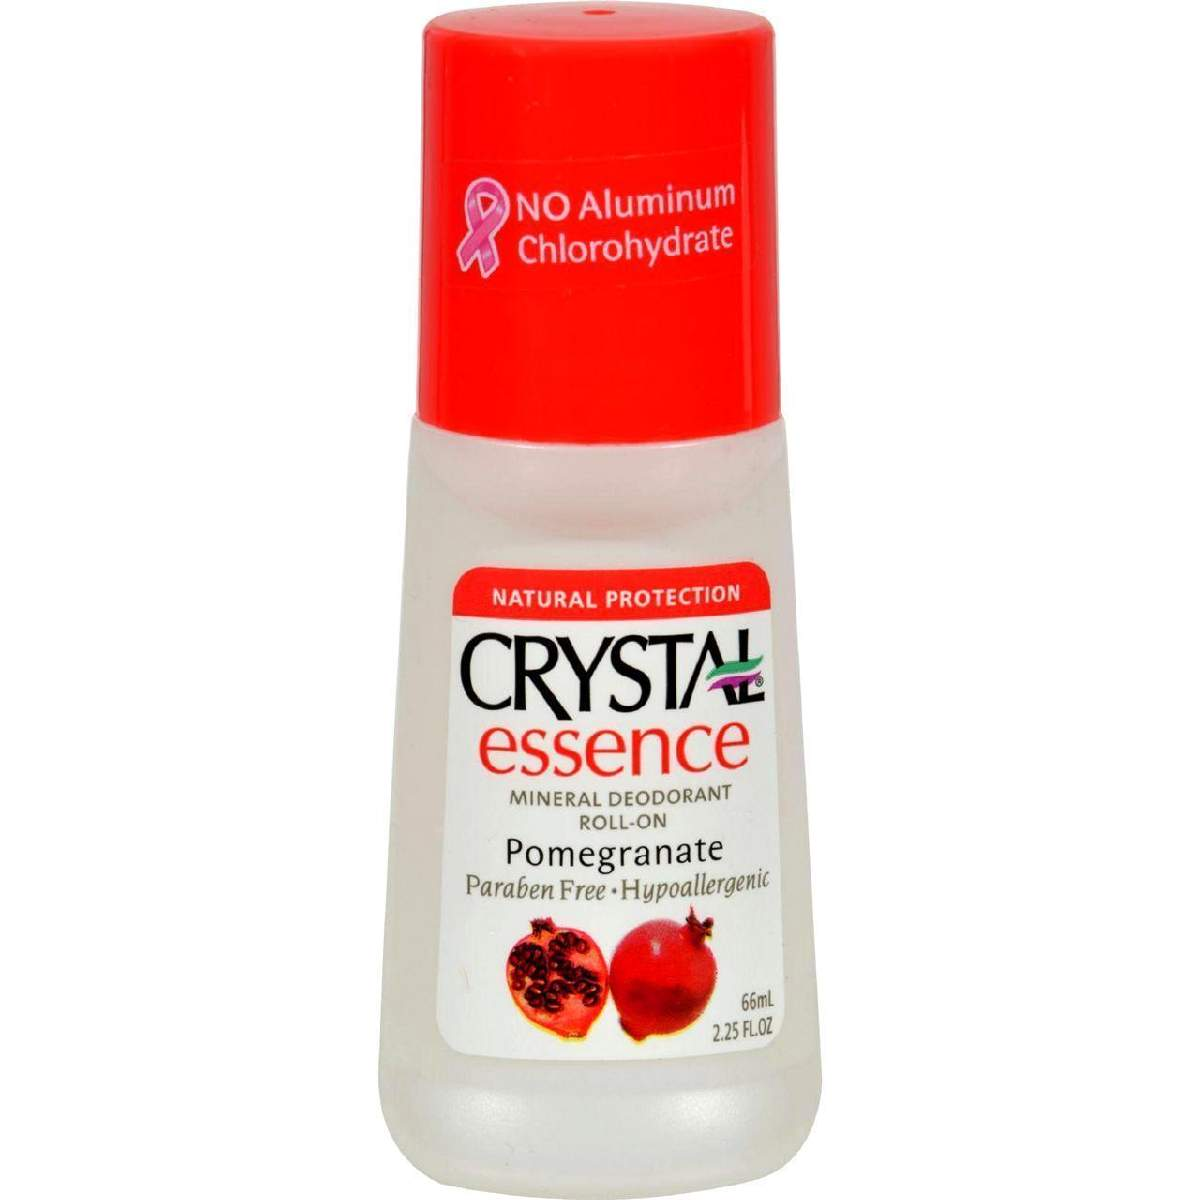 Crystal Essence Mineral Deodorant Roll-On Pomegranate - 2.25 Fl Oz